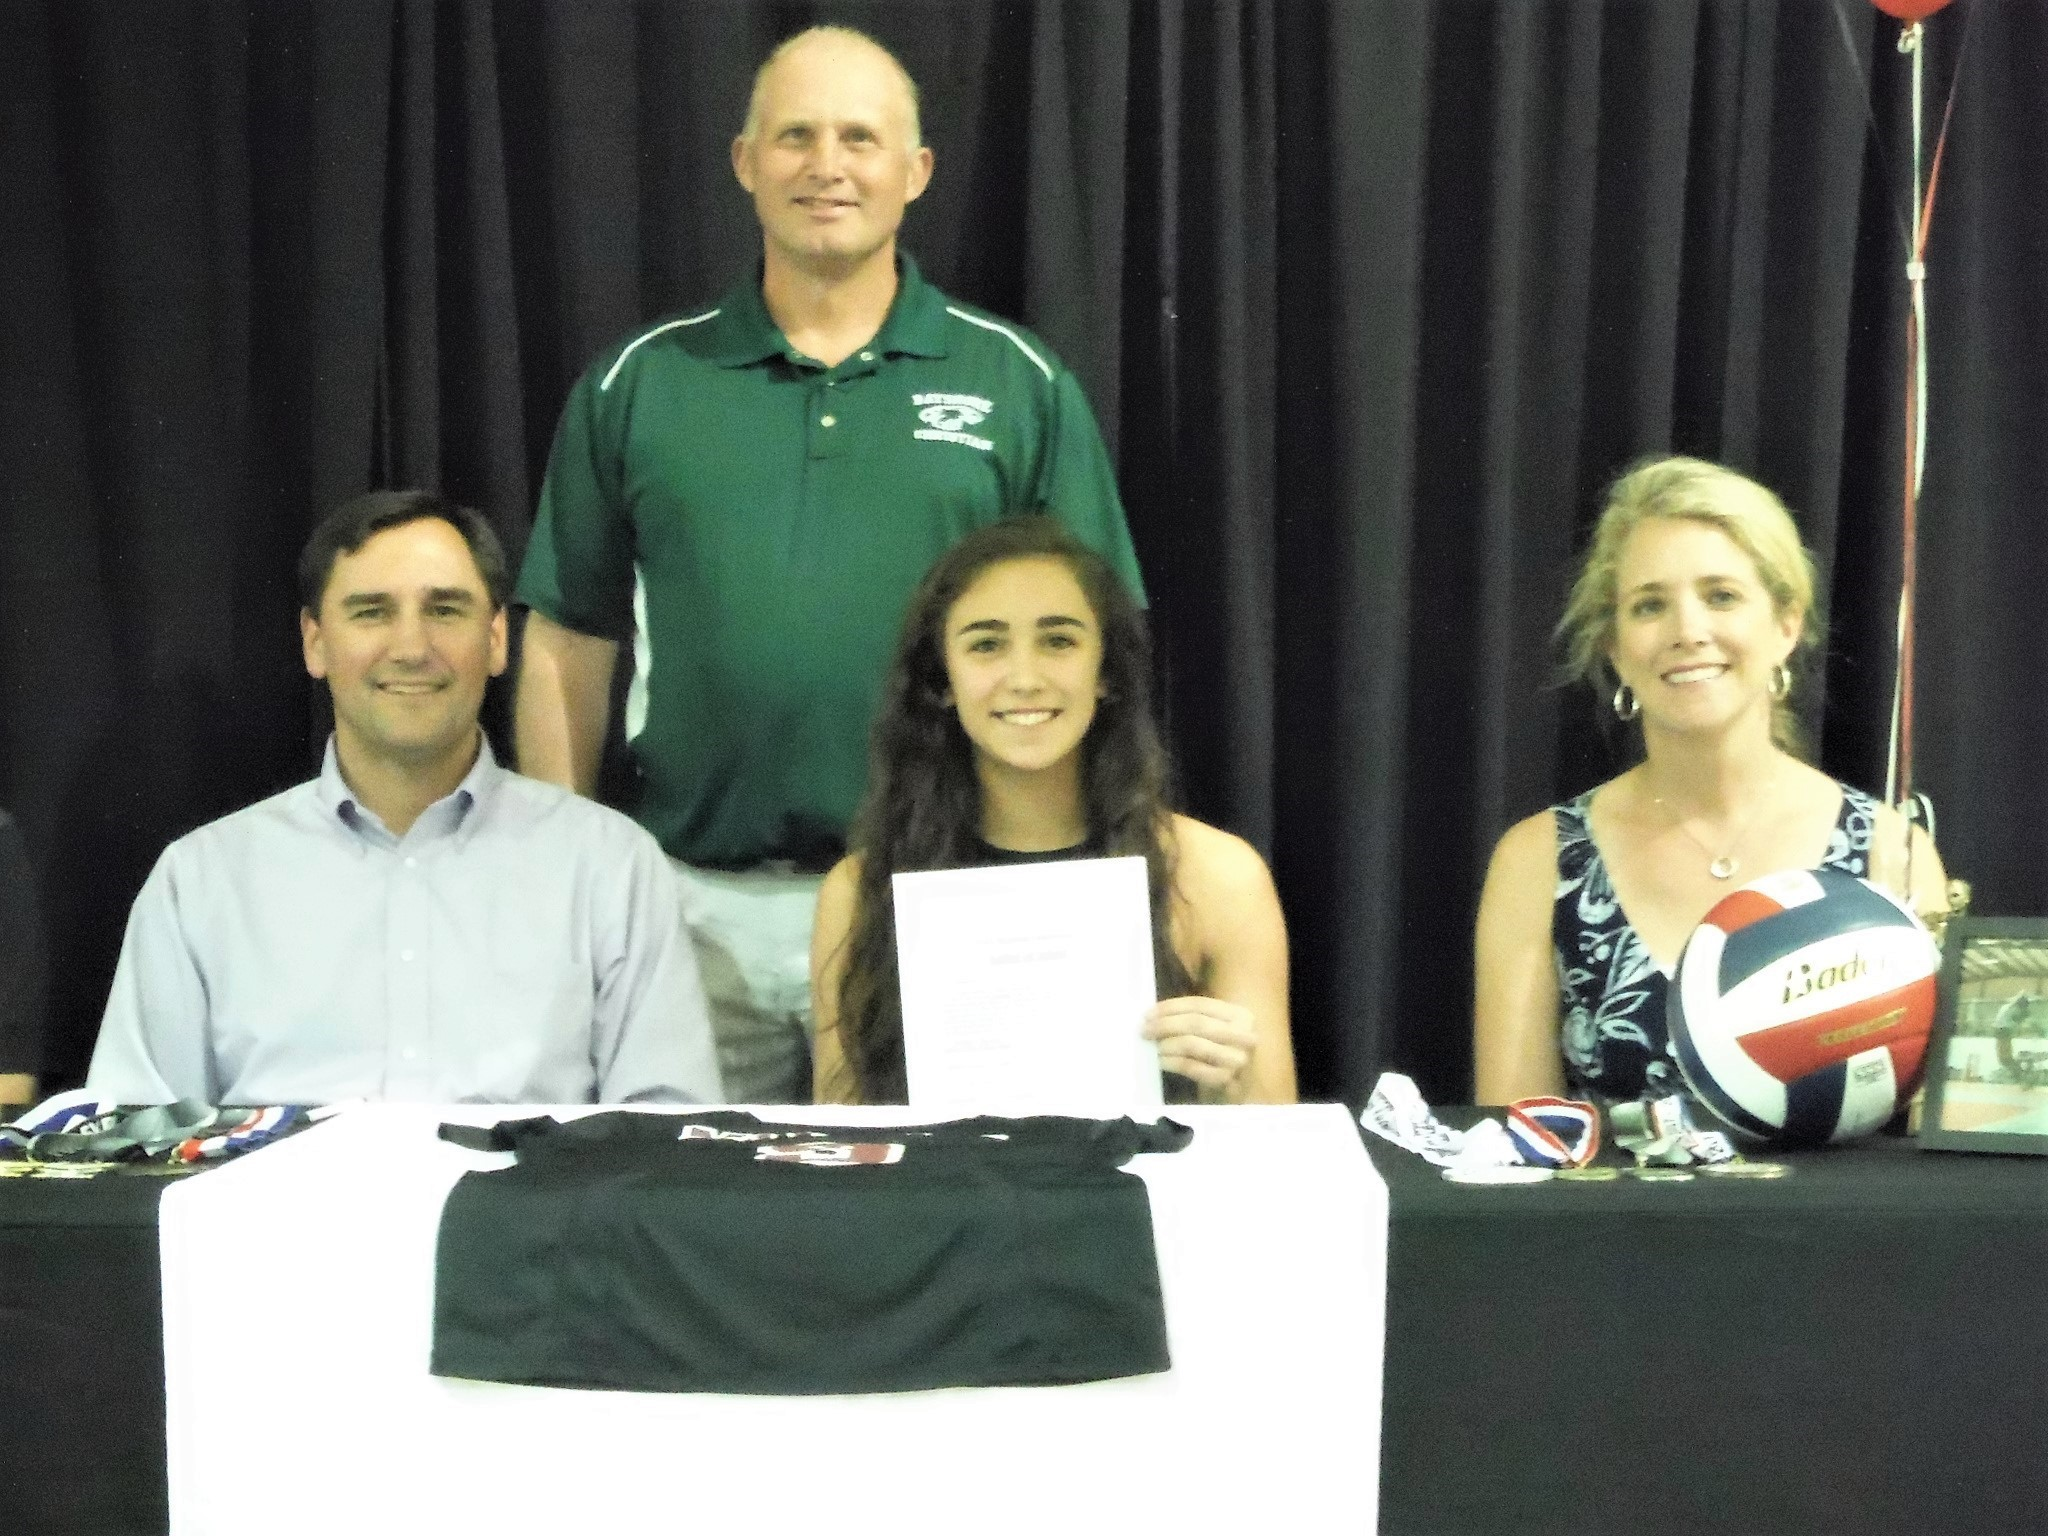 Ashley Conrad, seated center, between her parents Chris and Natalie with BCS volleyball coach Dave Omtvedt.